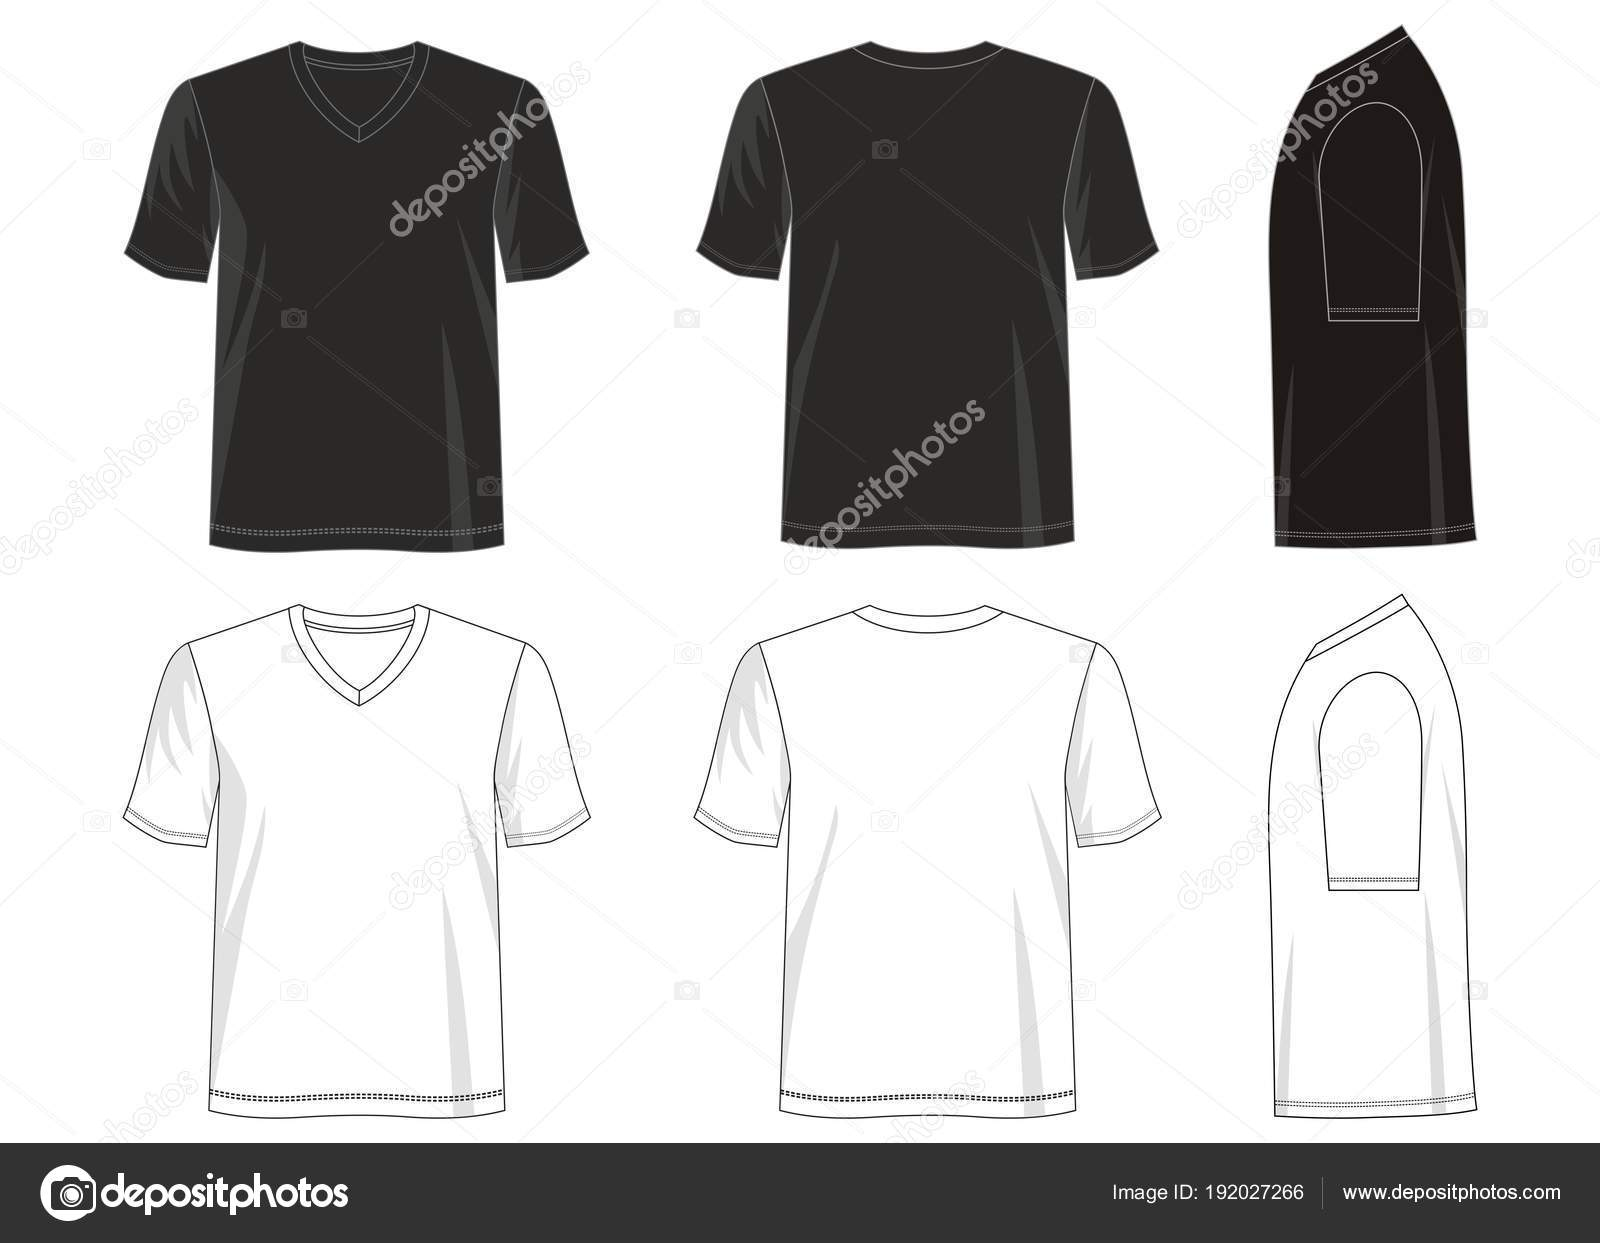 Design Vector Shirt Template Collection Men Color Black White - Design a shirt template